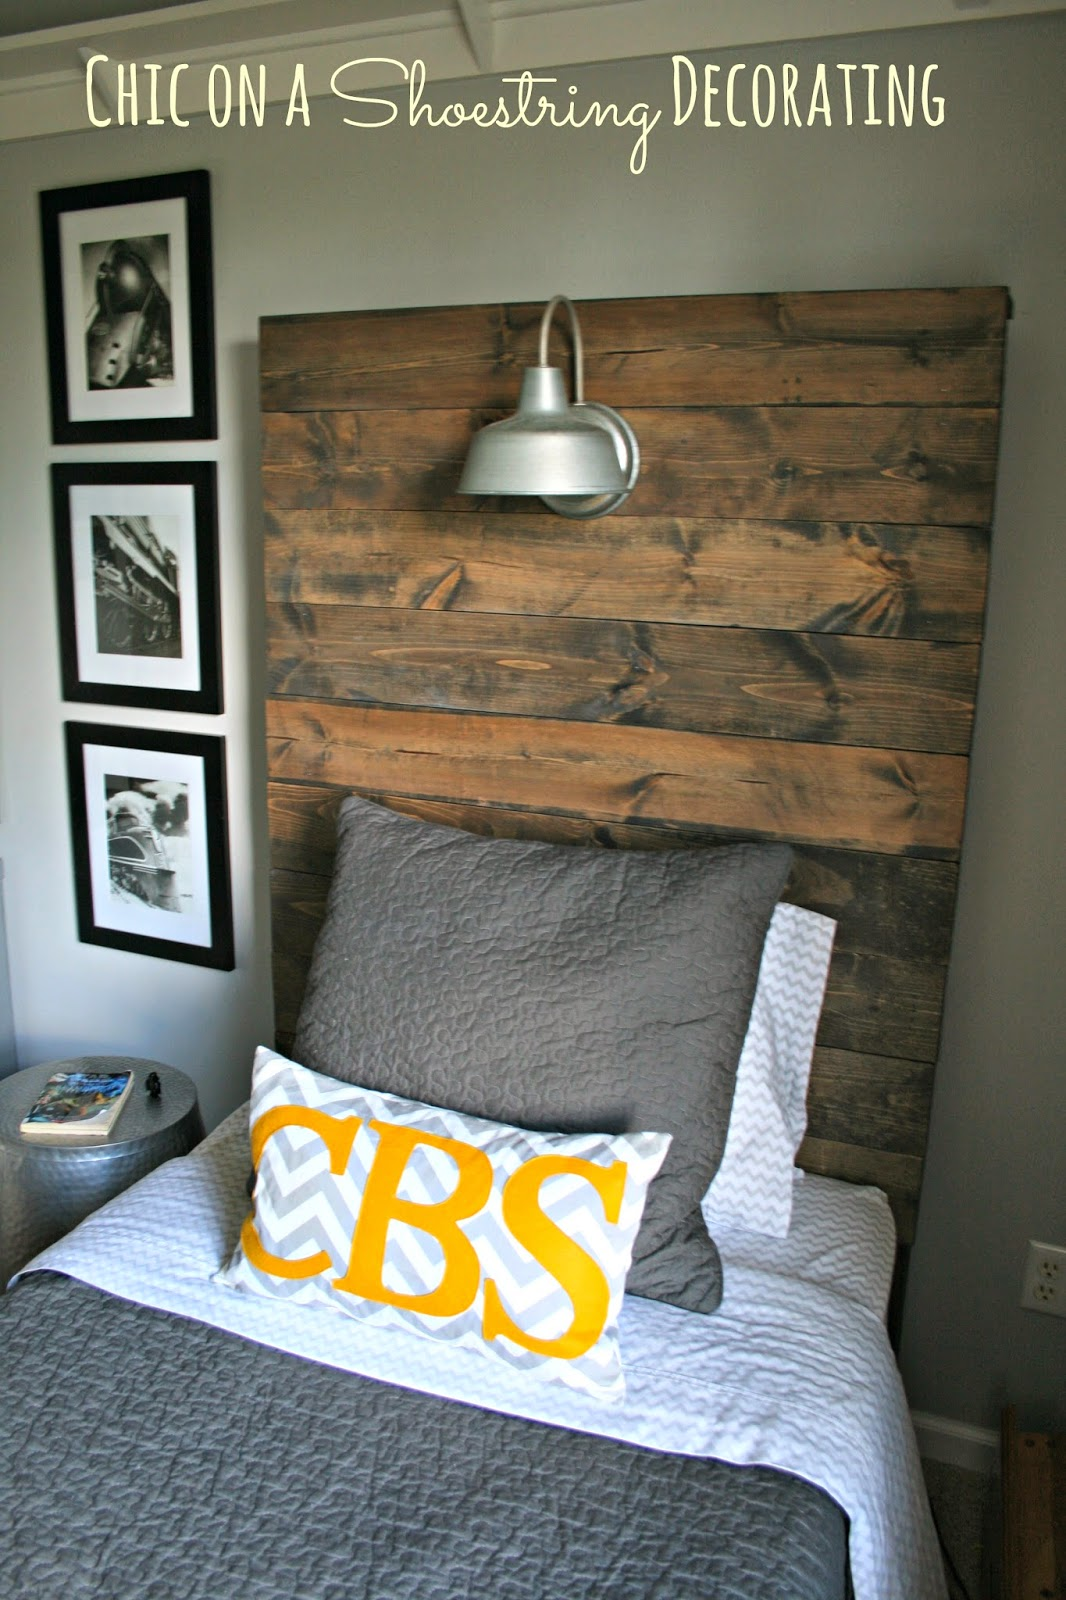 Chic on a Shoestring Decorating: How to Build a Rustic ...